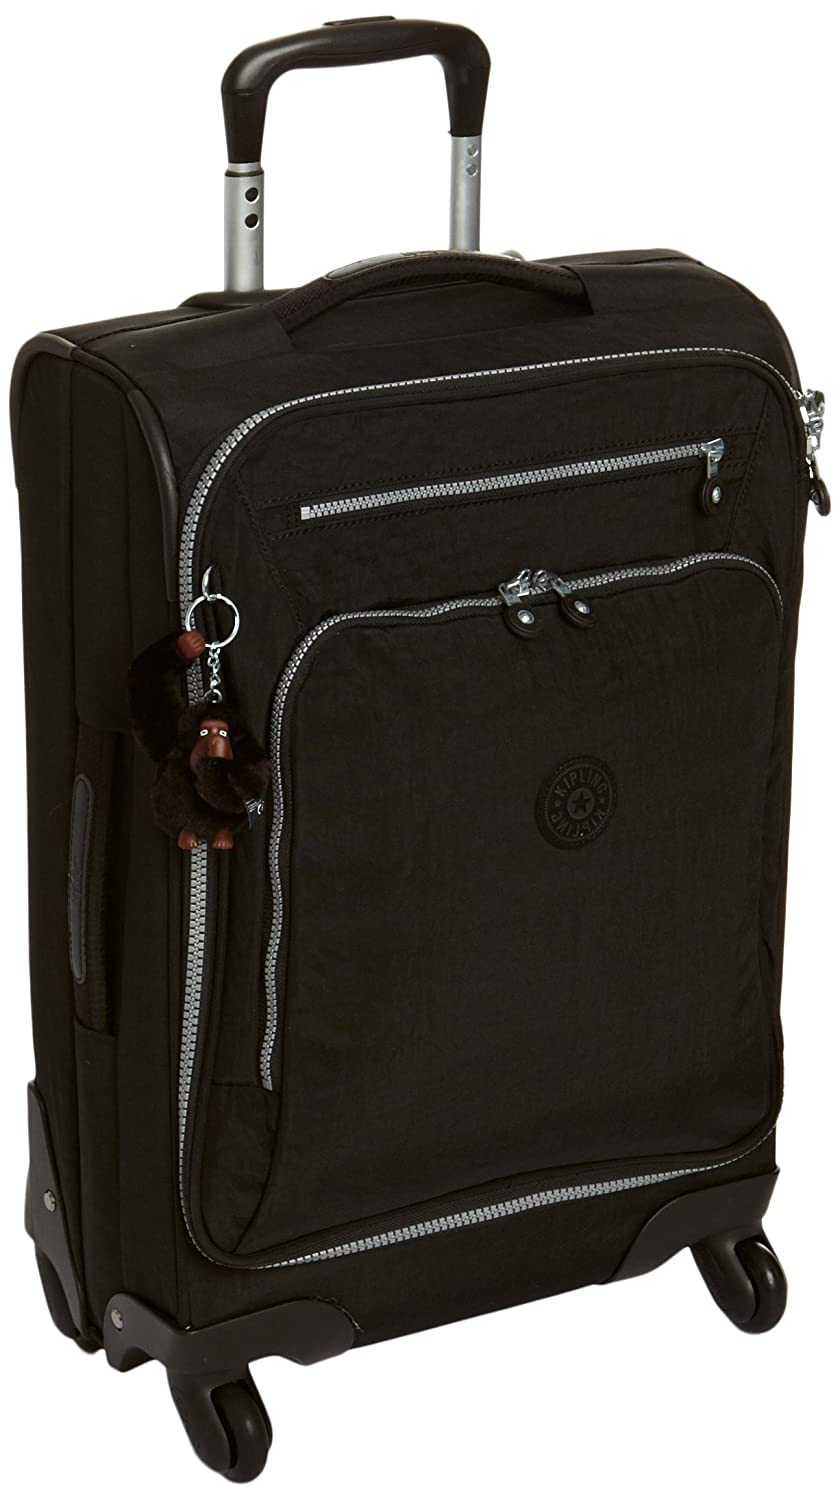 Beautiful Kipling Youri Spin 55, Hand Luggage, 55 Cm, 33 Liters, Black: Amazon.co.uk:  Luggage